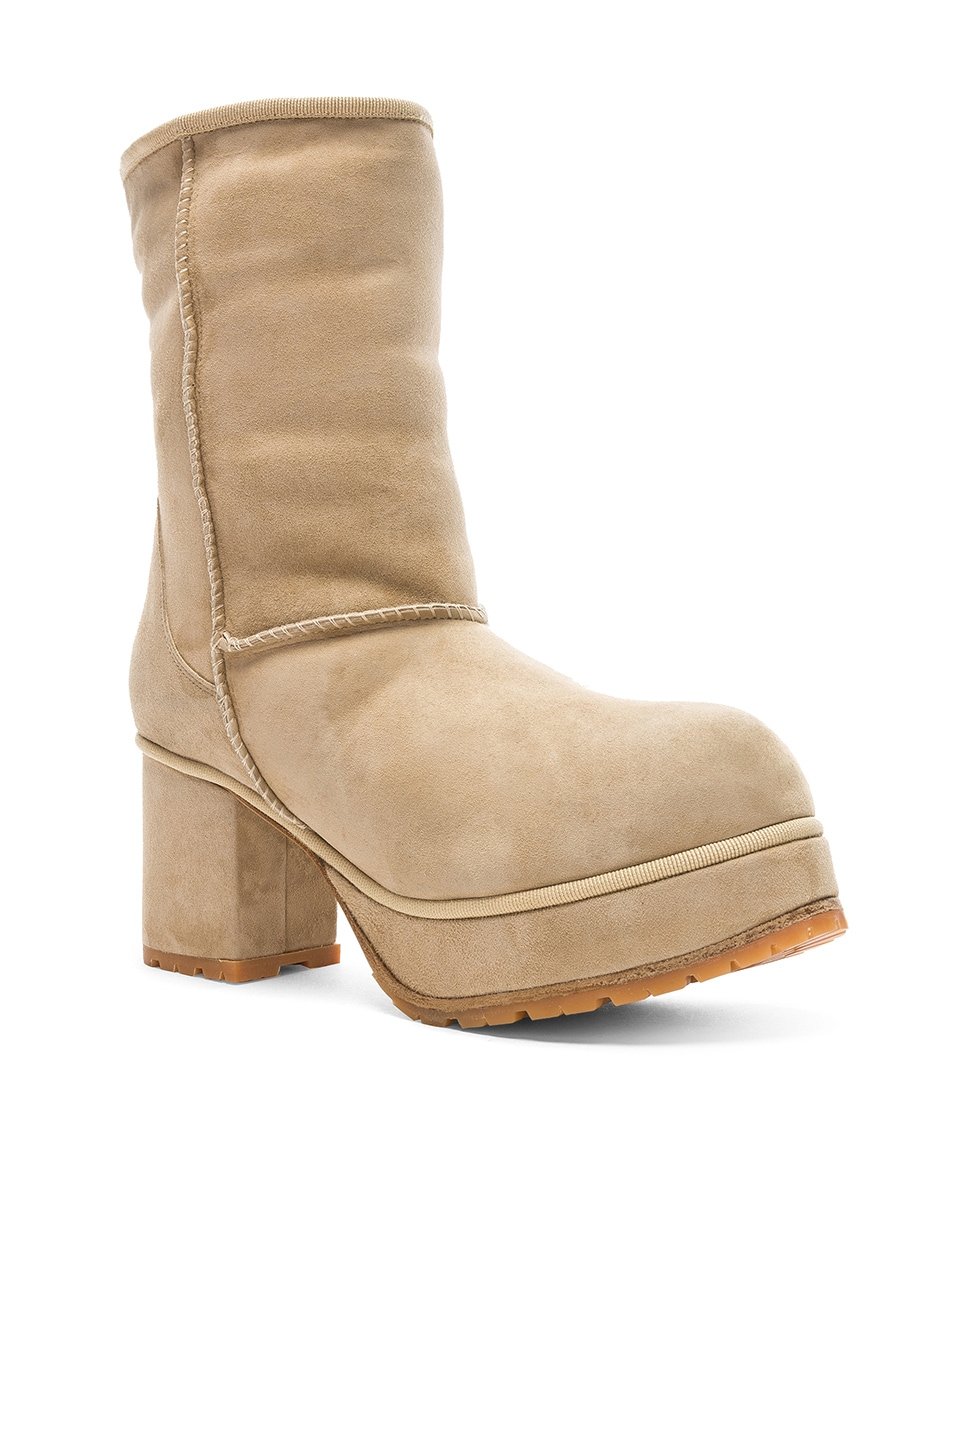 Image 2 of R13 Sheep Shearling Boots in Two Tone Tan